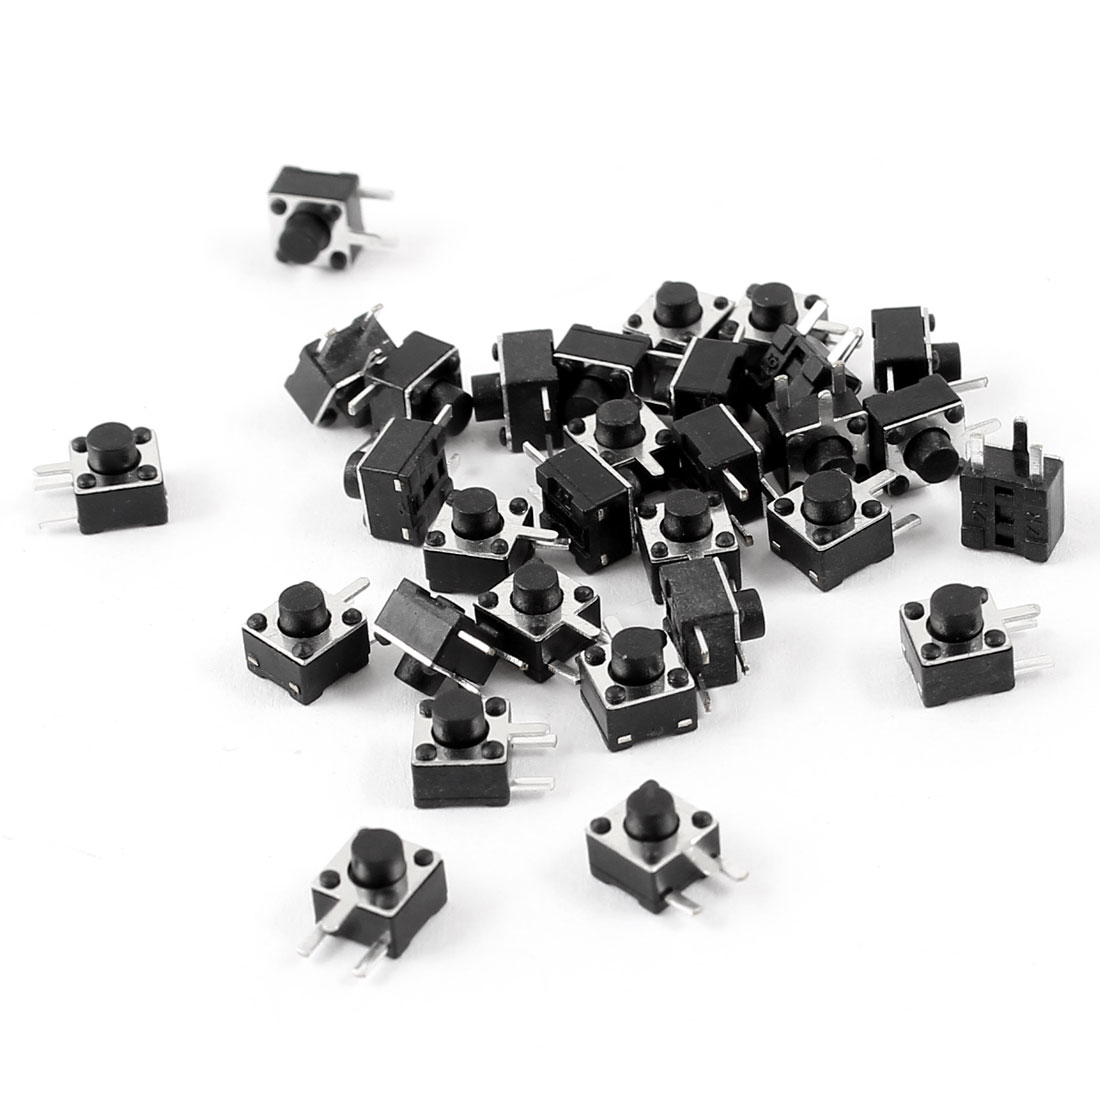 30 Pcs PCB Mount Momentary 3 Terminals SPST Tactile Tact Switch Black 4.5x4.5x4.3mm